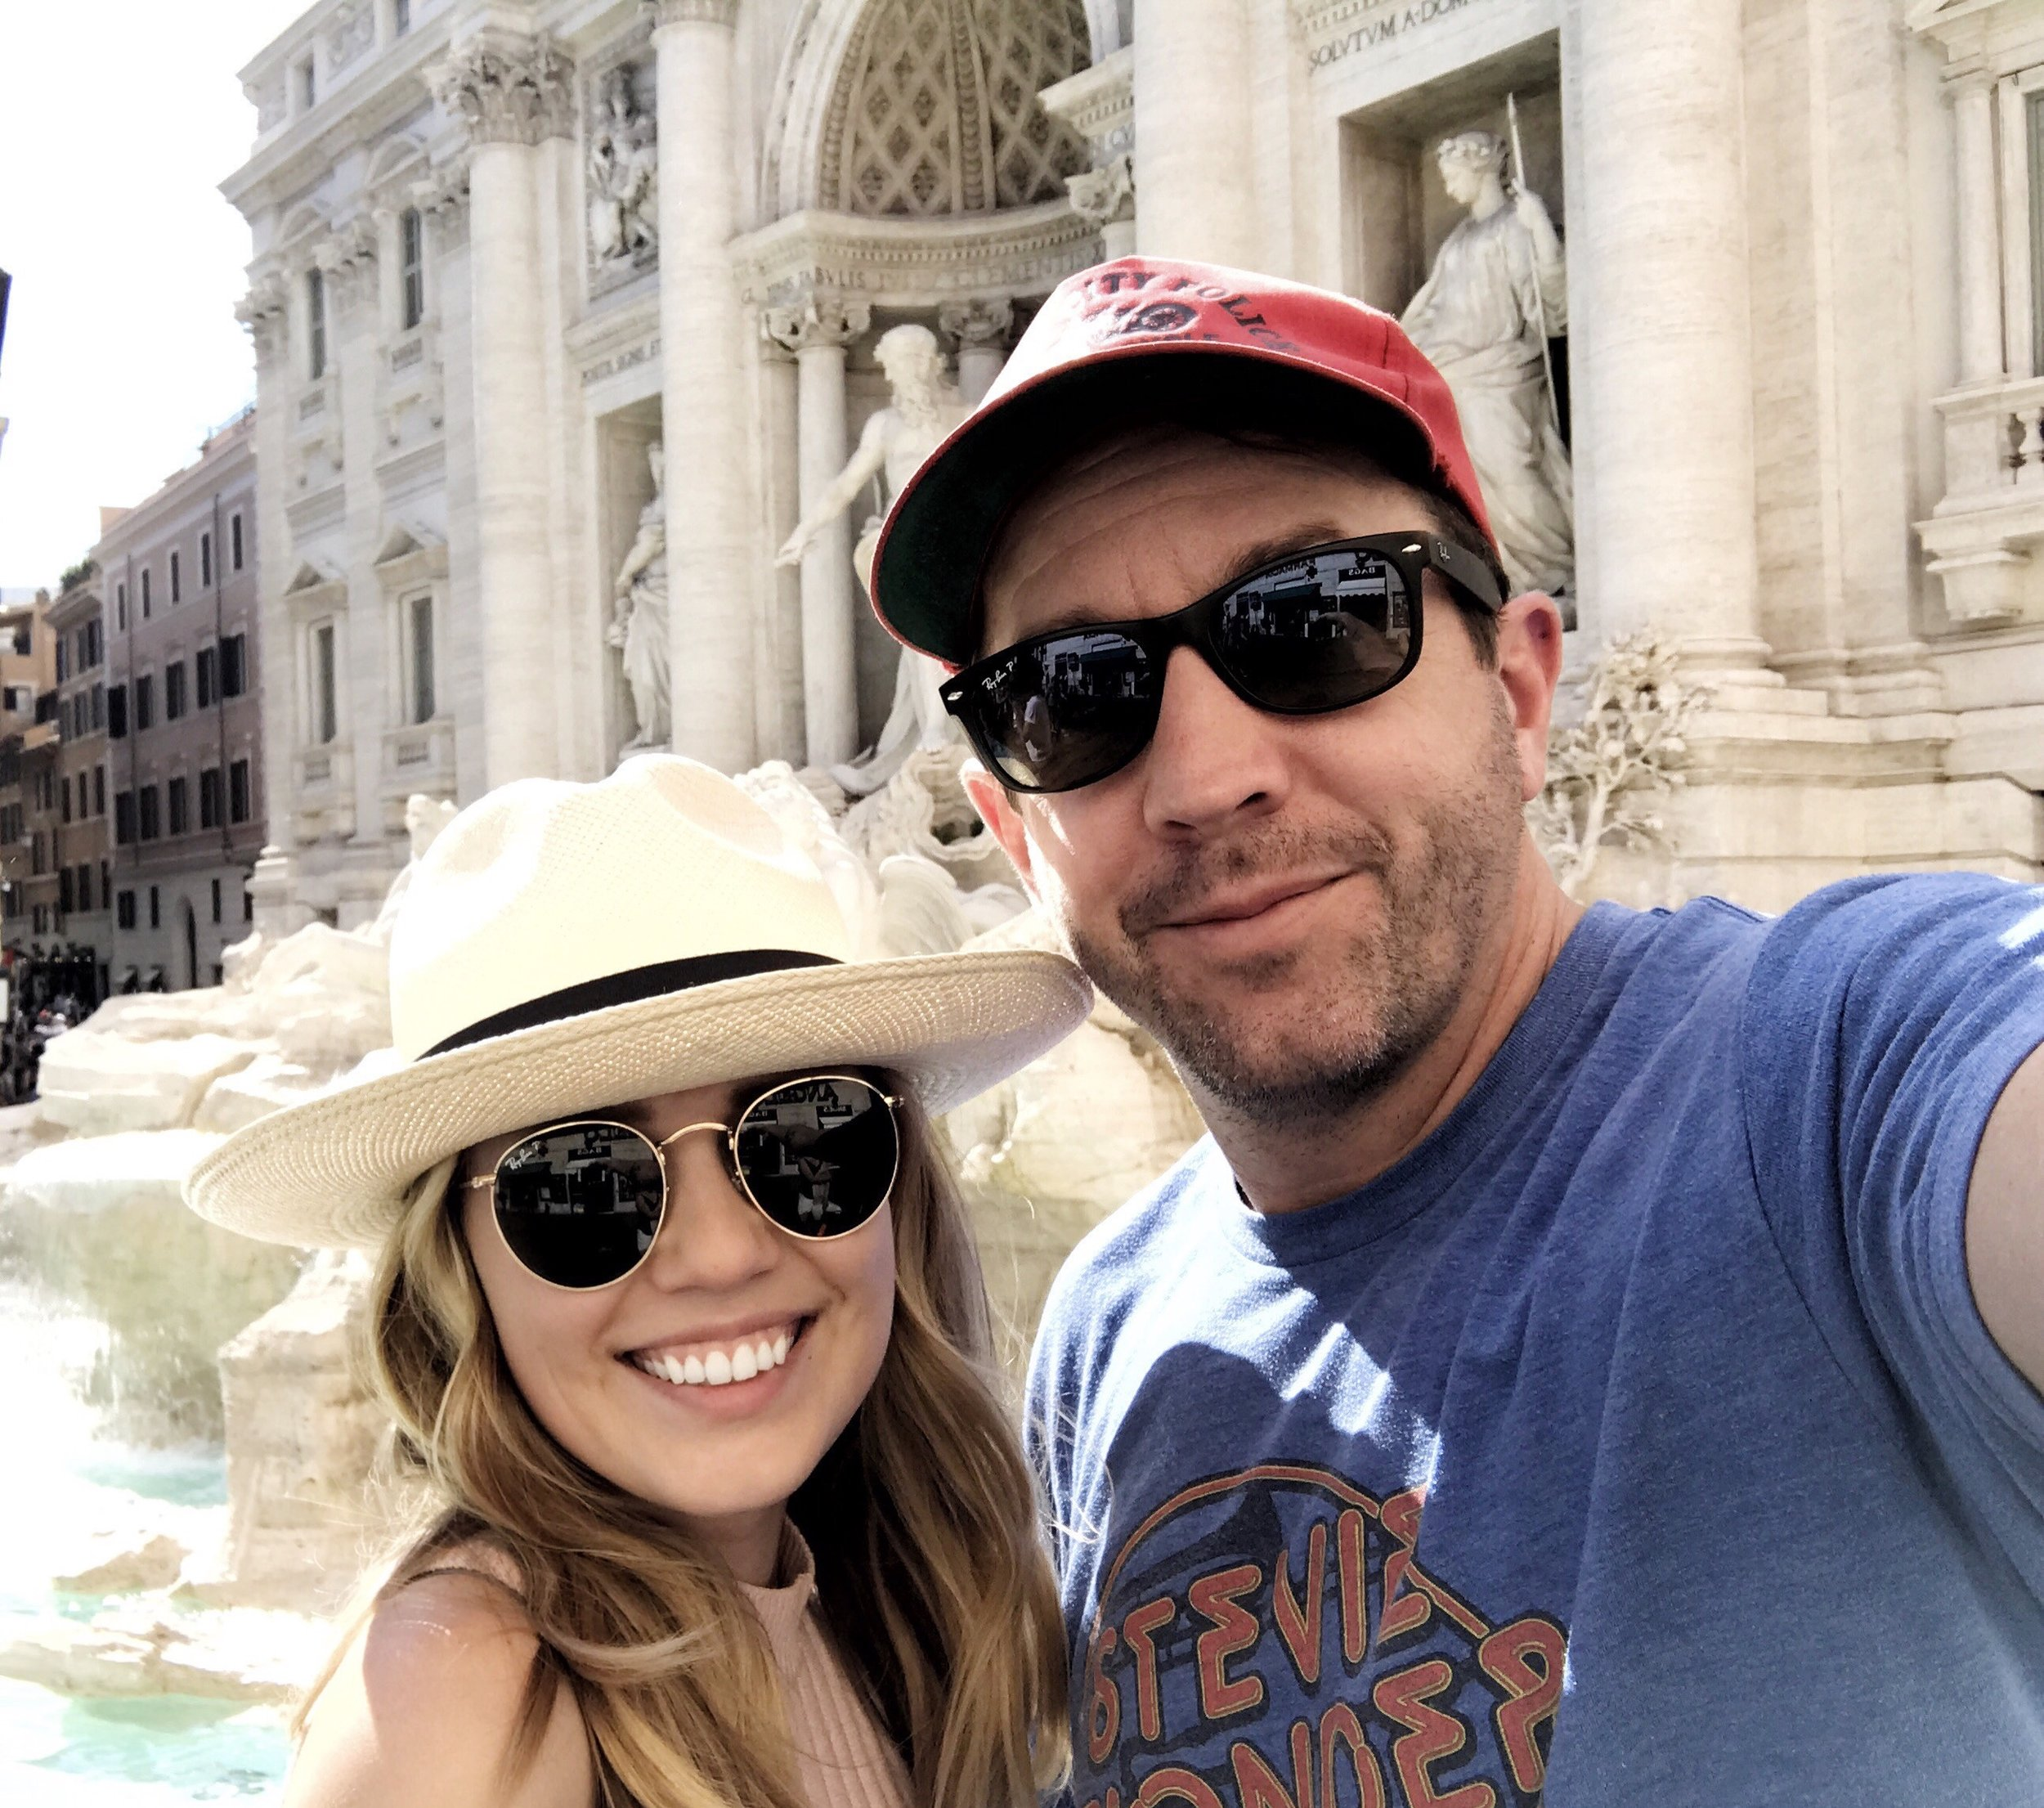 Me and Potsy at the Trevi Fountain <3